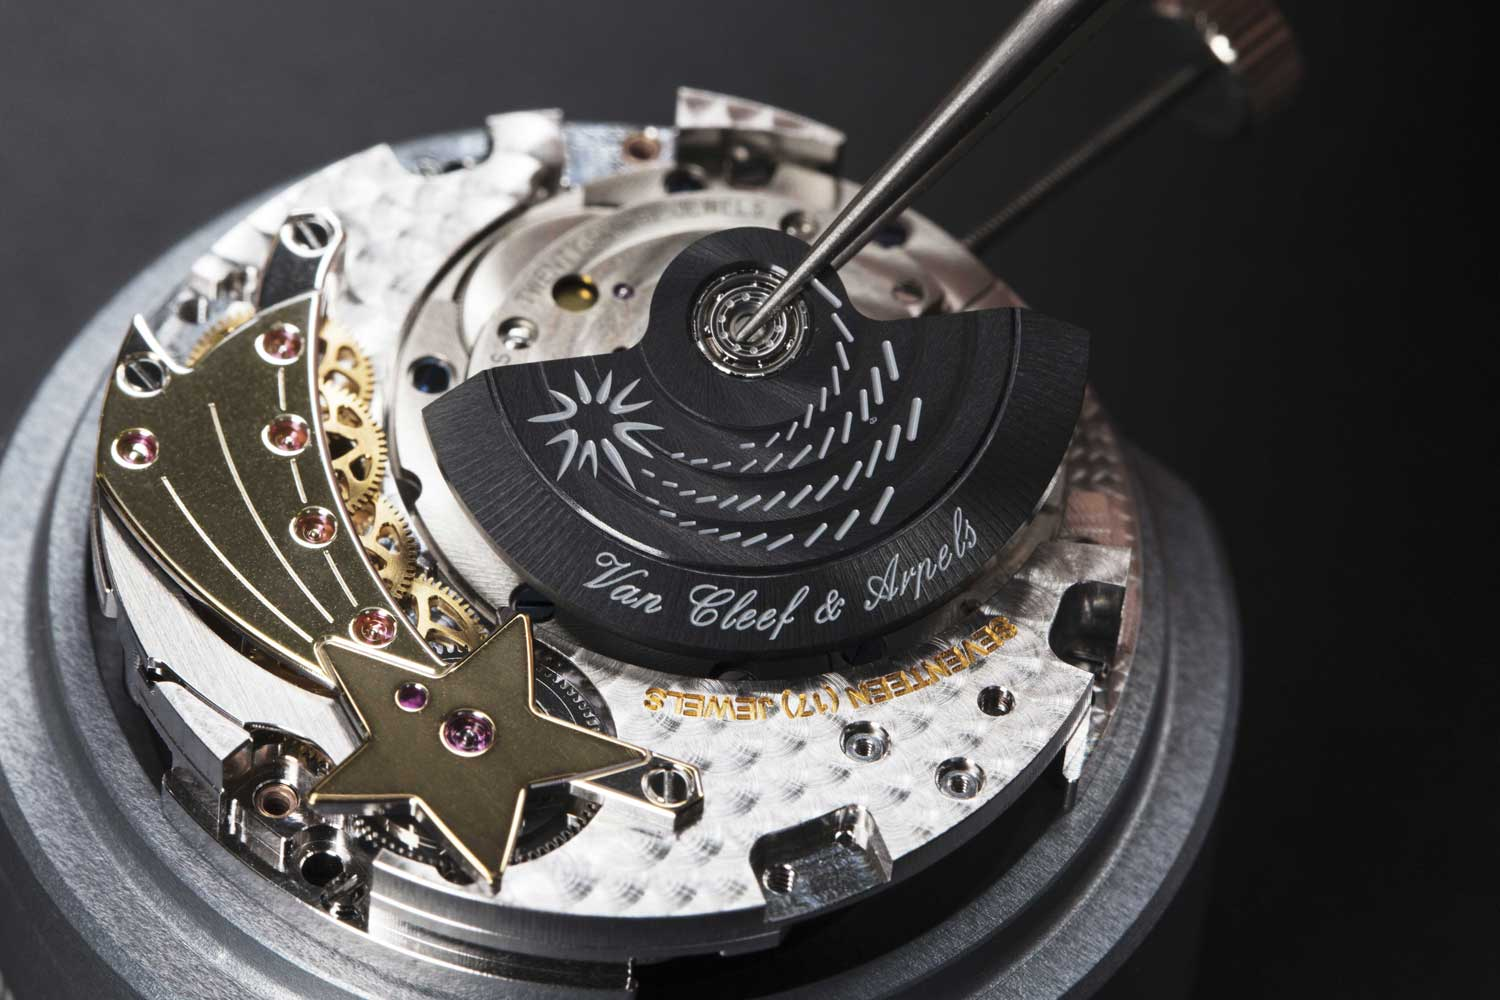 The Valfleurier Q020 caliber inside the Lady Arpels Zodiac Lumineux watches